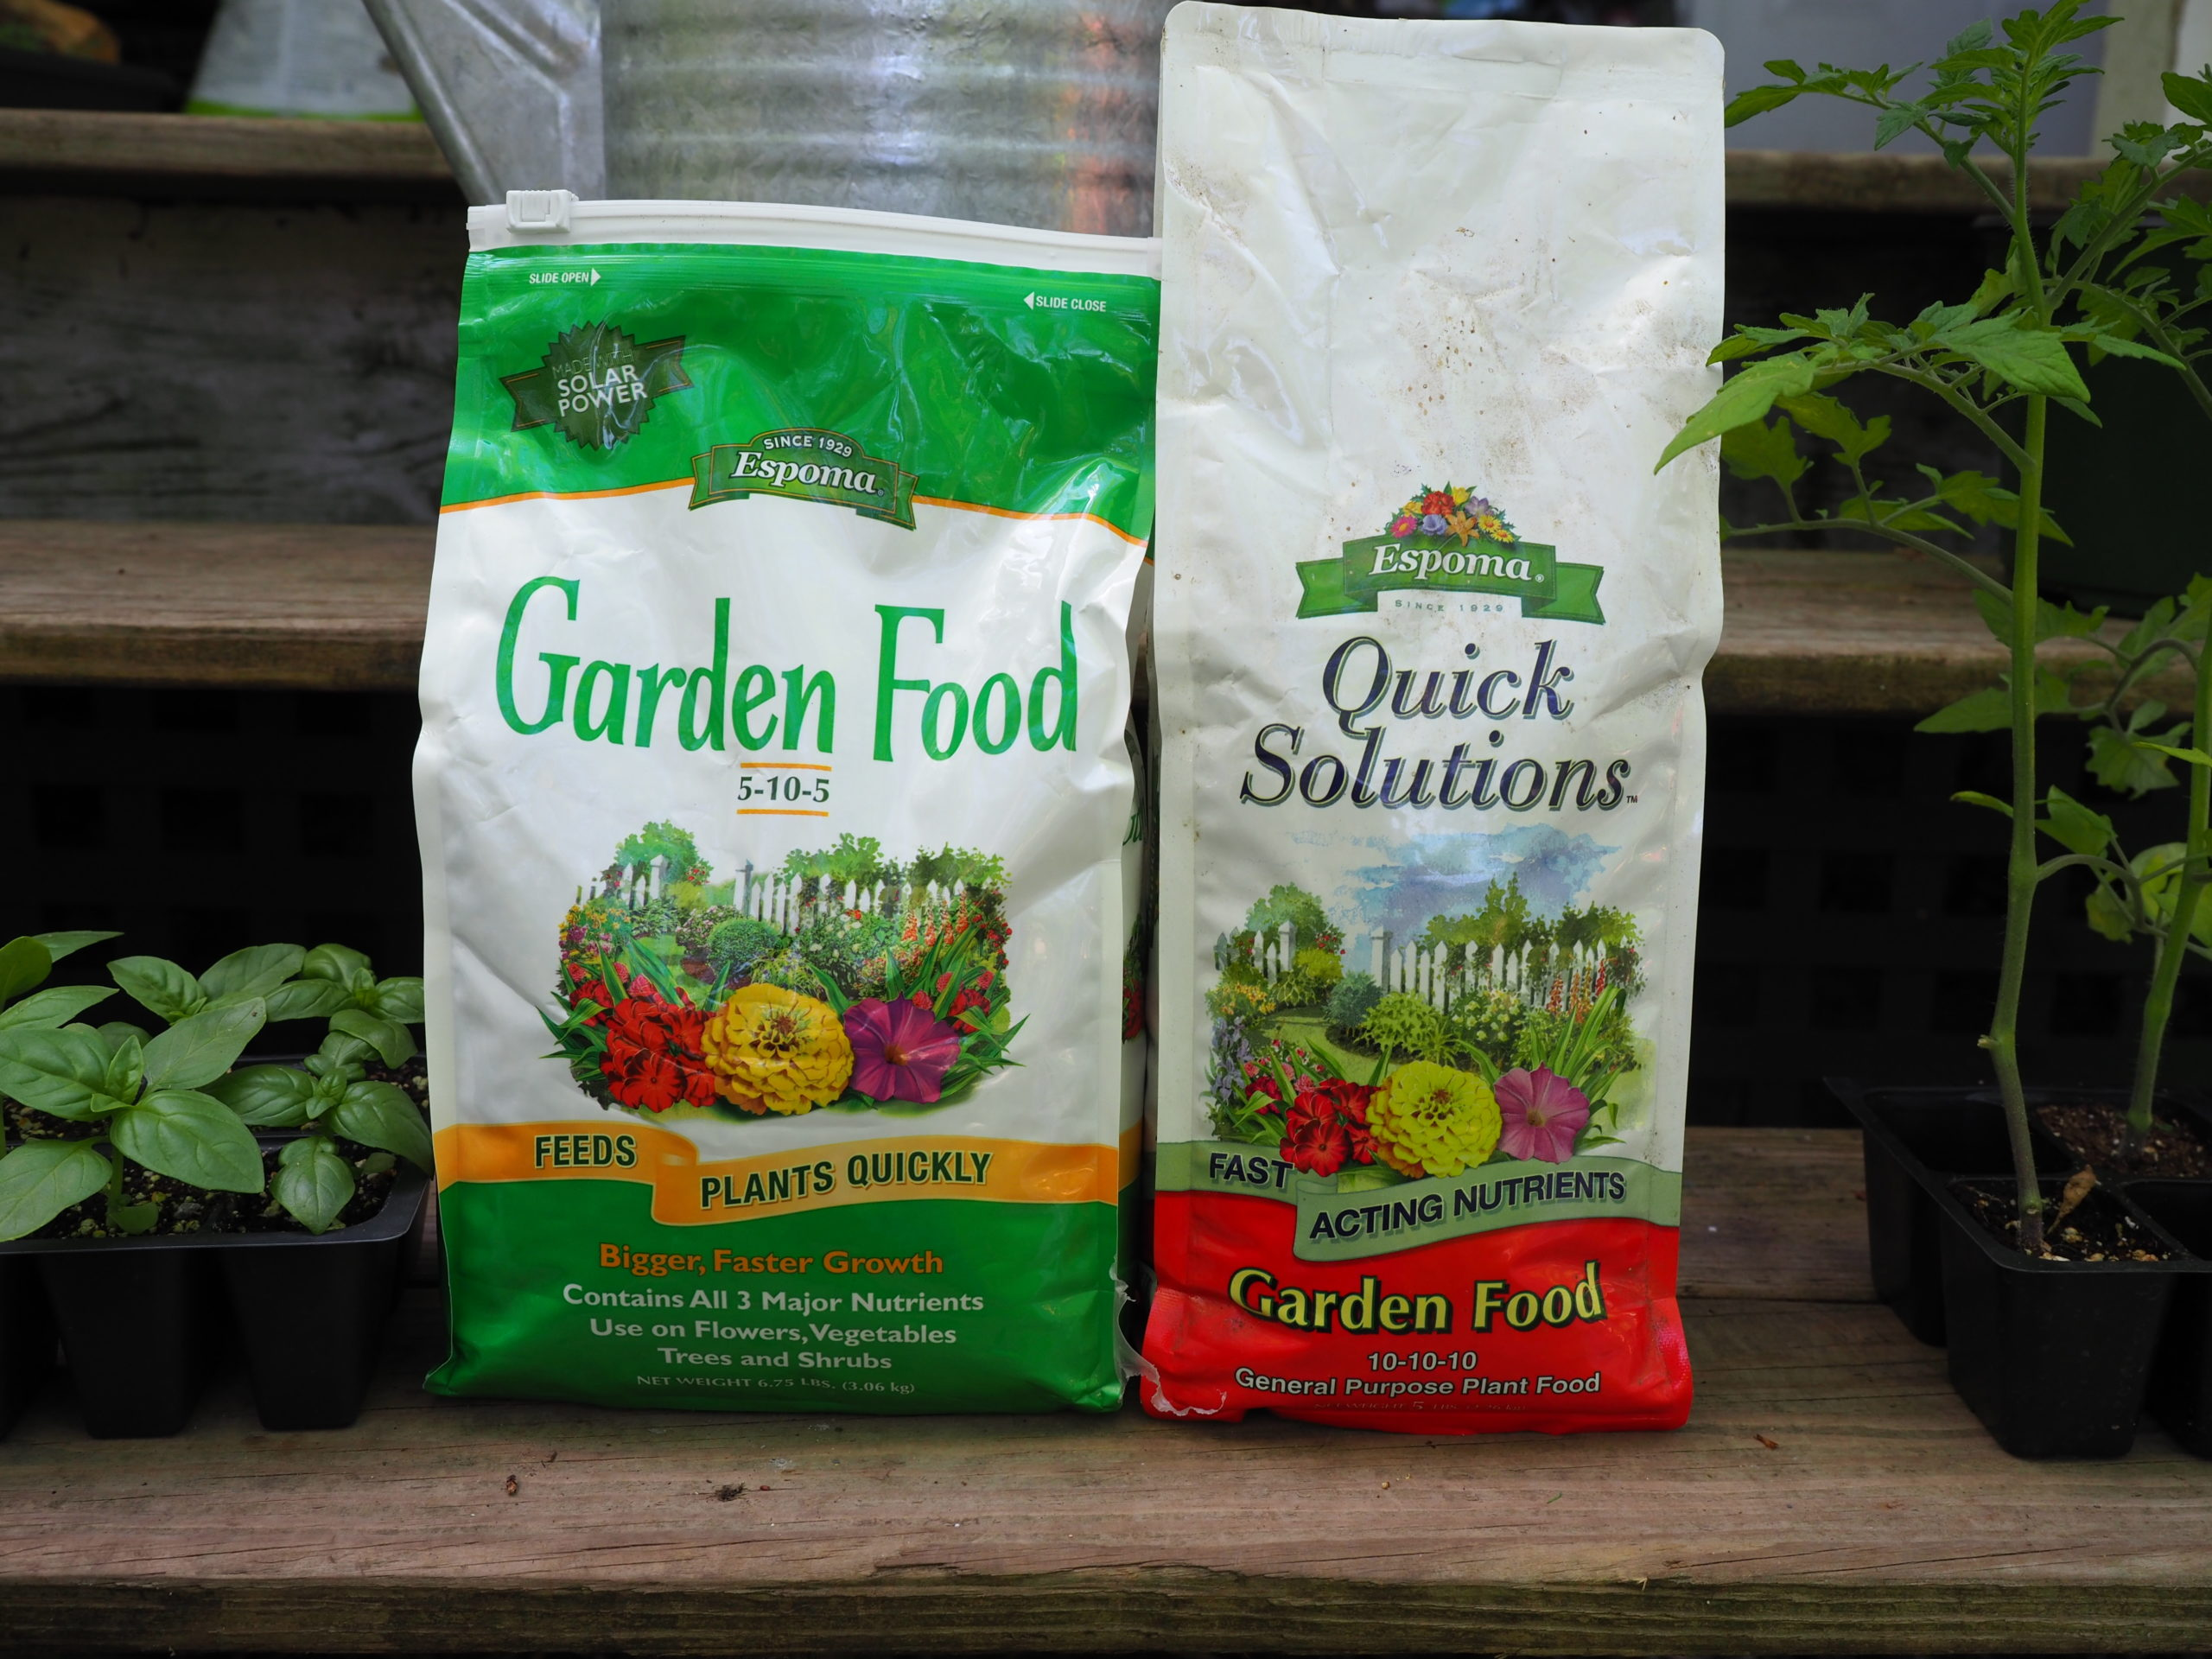 """Beware of your brands. Most gardeners equate the Espoma brand with organics, but here are two of their products that are chemical and not organic fertilizers. The directions caution """"when used with care, it is an excellent general purpose plant food."""" On the left is a chemical based 5-10-5 with its 10-10-10 counterpart on the right."""